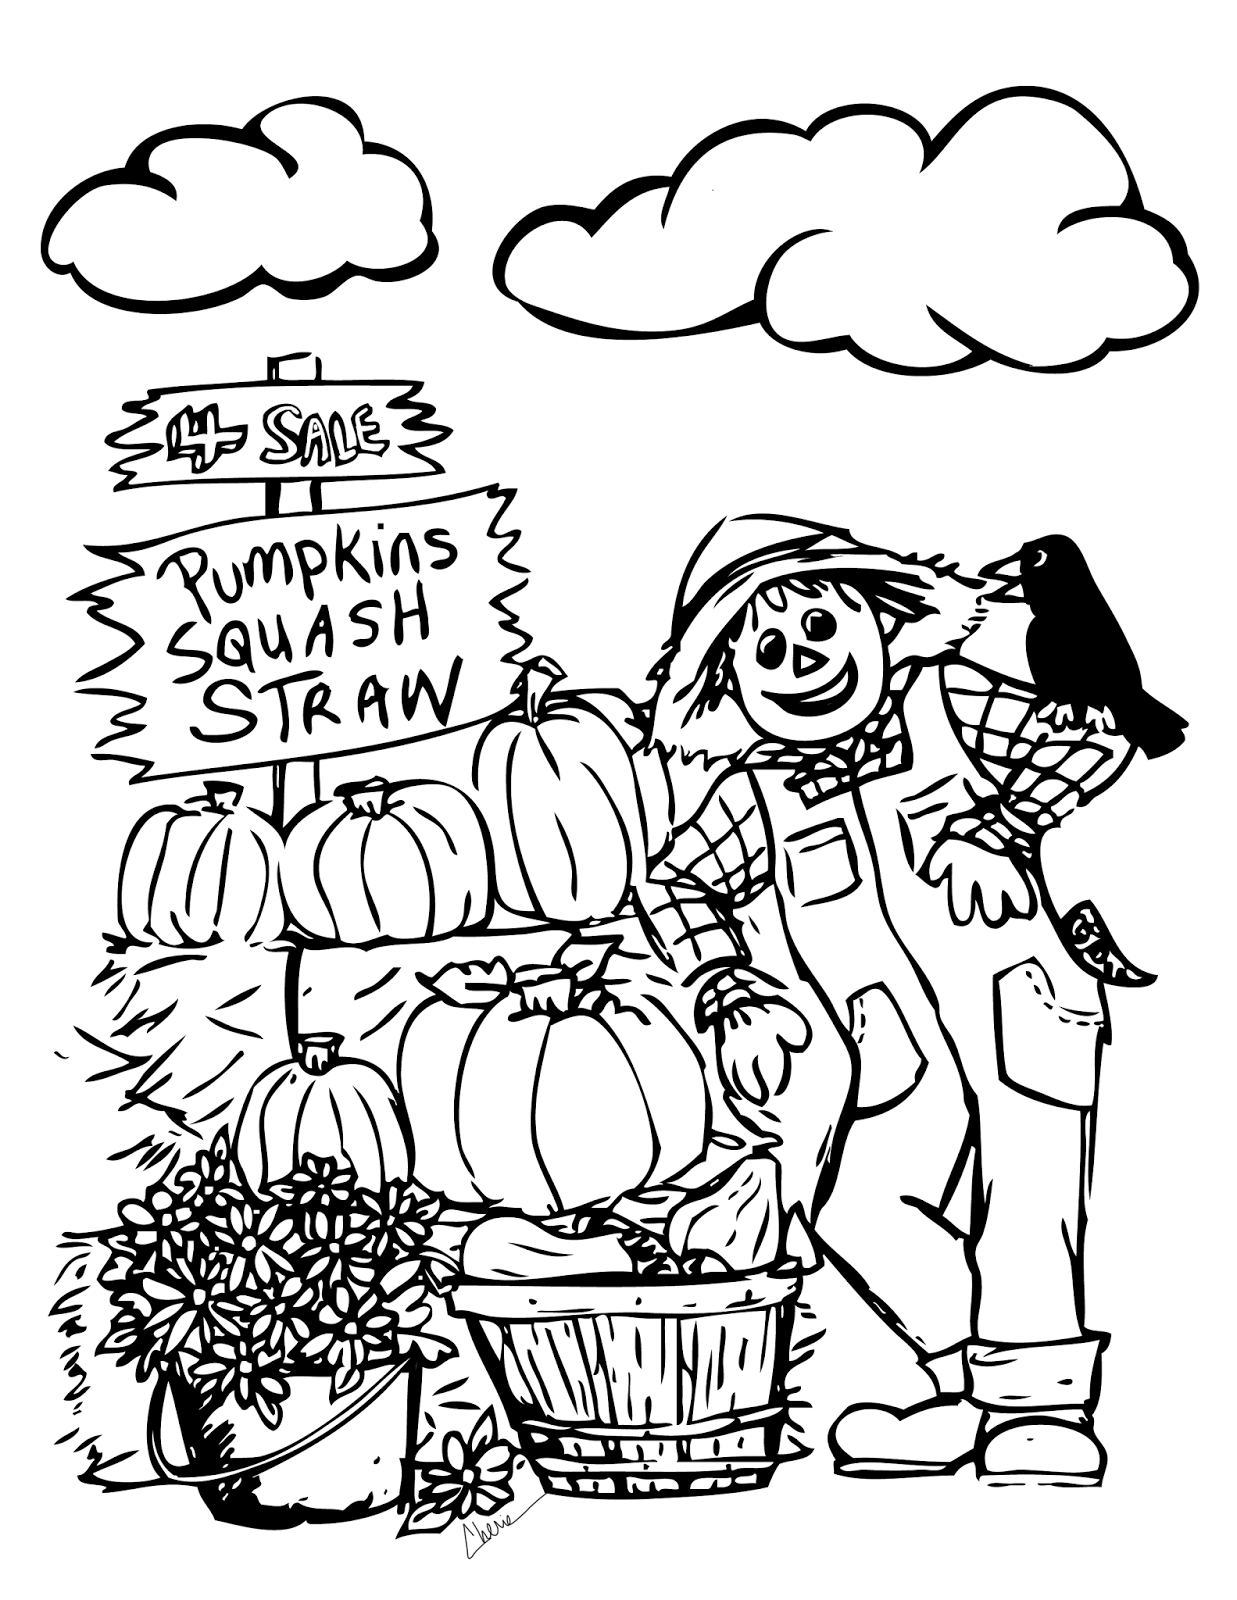 Coloring Pages Fall Pumpkin Coloring Pages fall pumpkin coloring pages to print az jack o lantern scarecrow page and with it come pumpkins